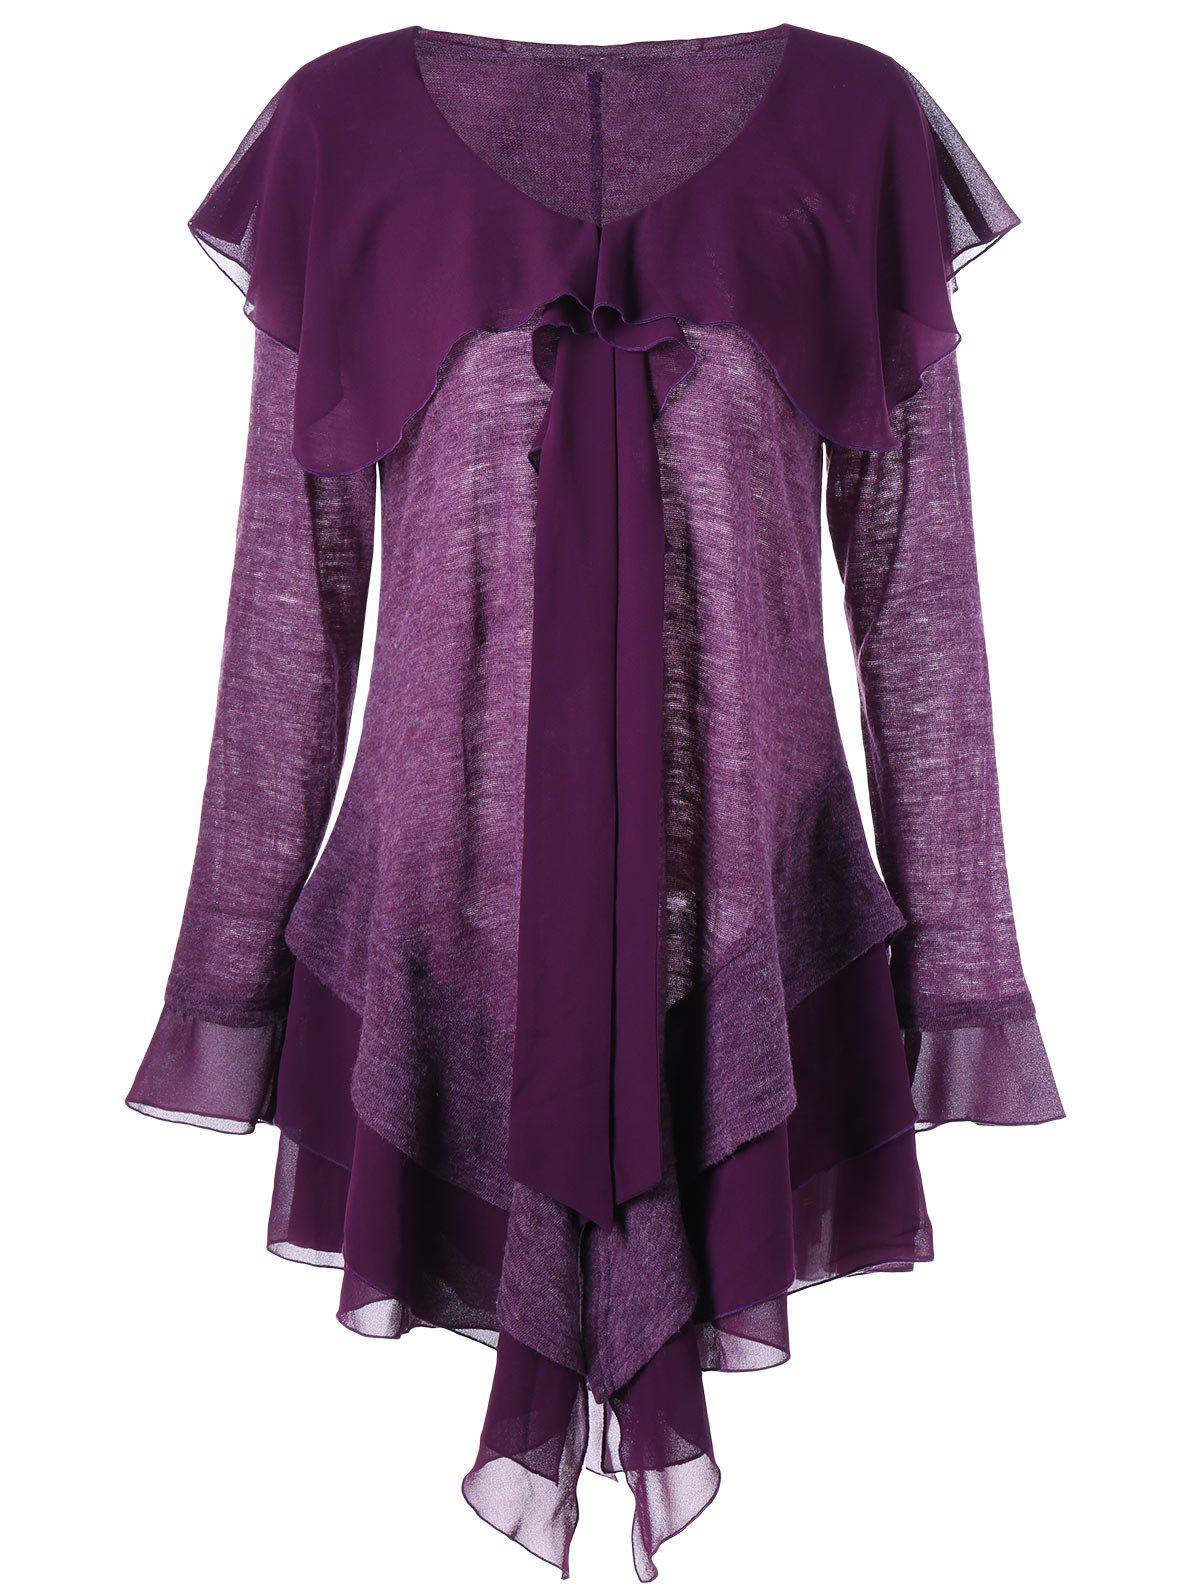 Plus Size Panel Long Sleeve Asymmetric Tiered DressWOMEN<br><br>Size: XL; Color: PURPLE; Style: Casual; Material: Polyester,Spandex; Silhouette: Asymmetrical; Dresses Length: Knee-Length; Neckline: V-Neck; Sleeve Type: Flare Sleeve; Sleeve Length: Long Sleeves; Embellishment: Panel; Pattern Type: Others; With Belt: No; Season: Fall,Spring; Weight: 0.3500kg; Package Contents: 1 x Dress;